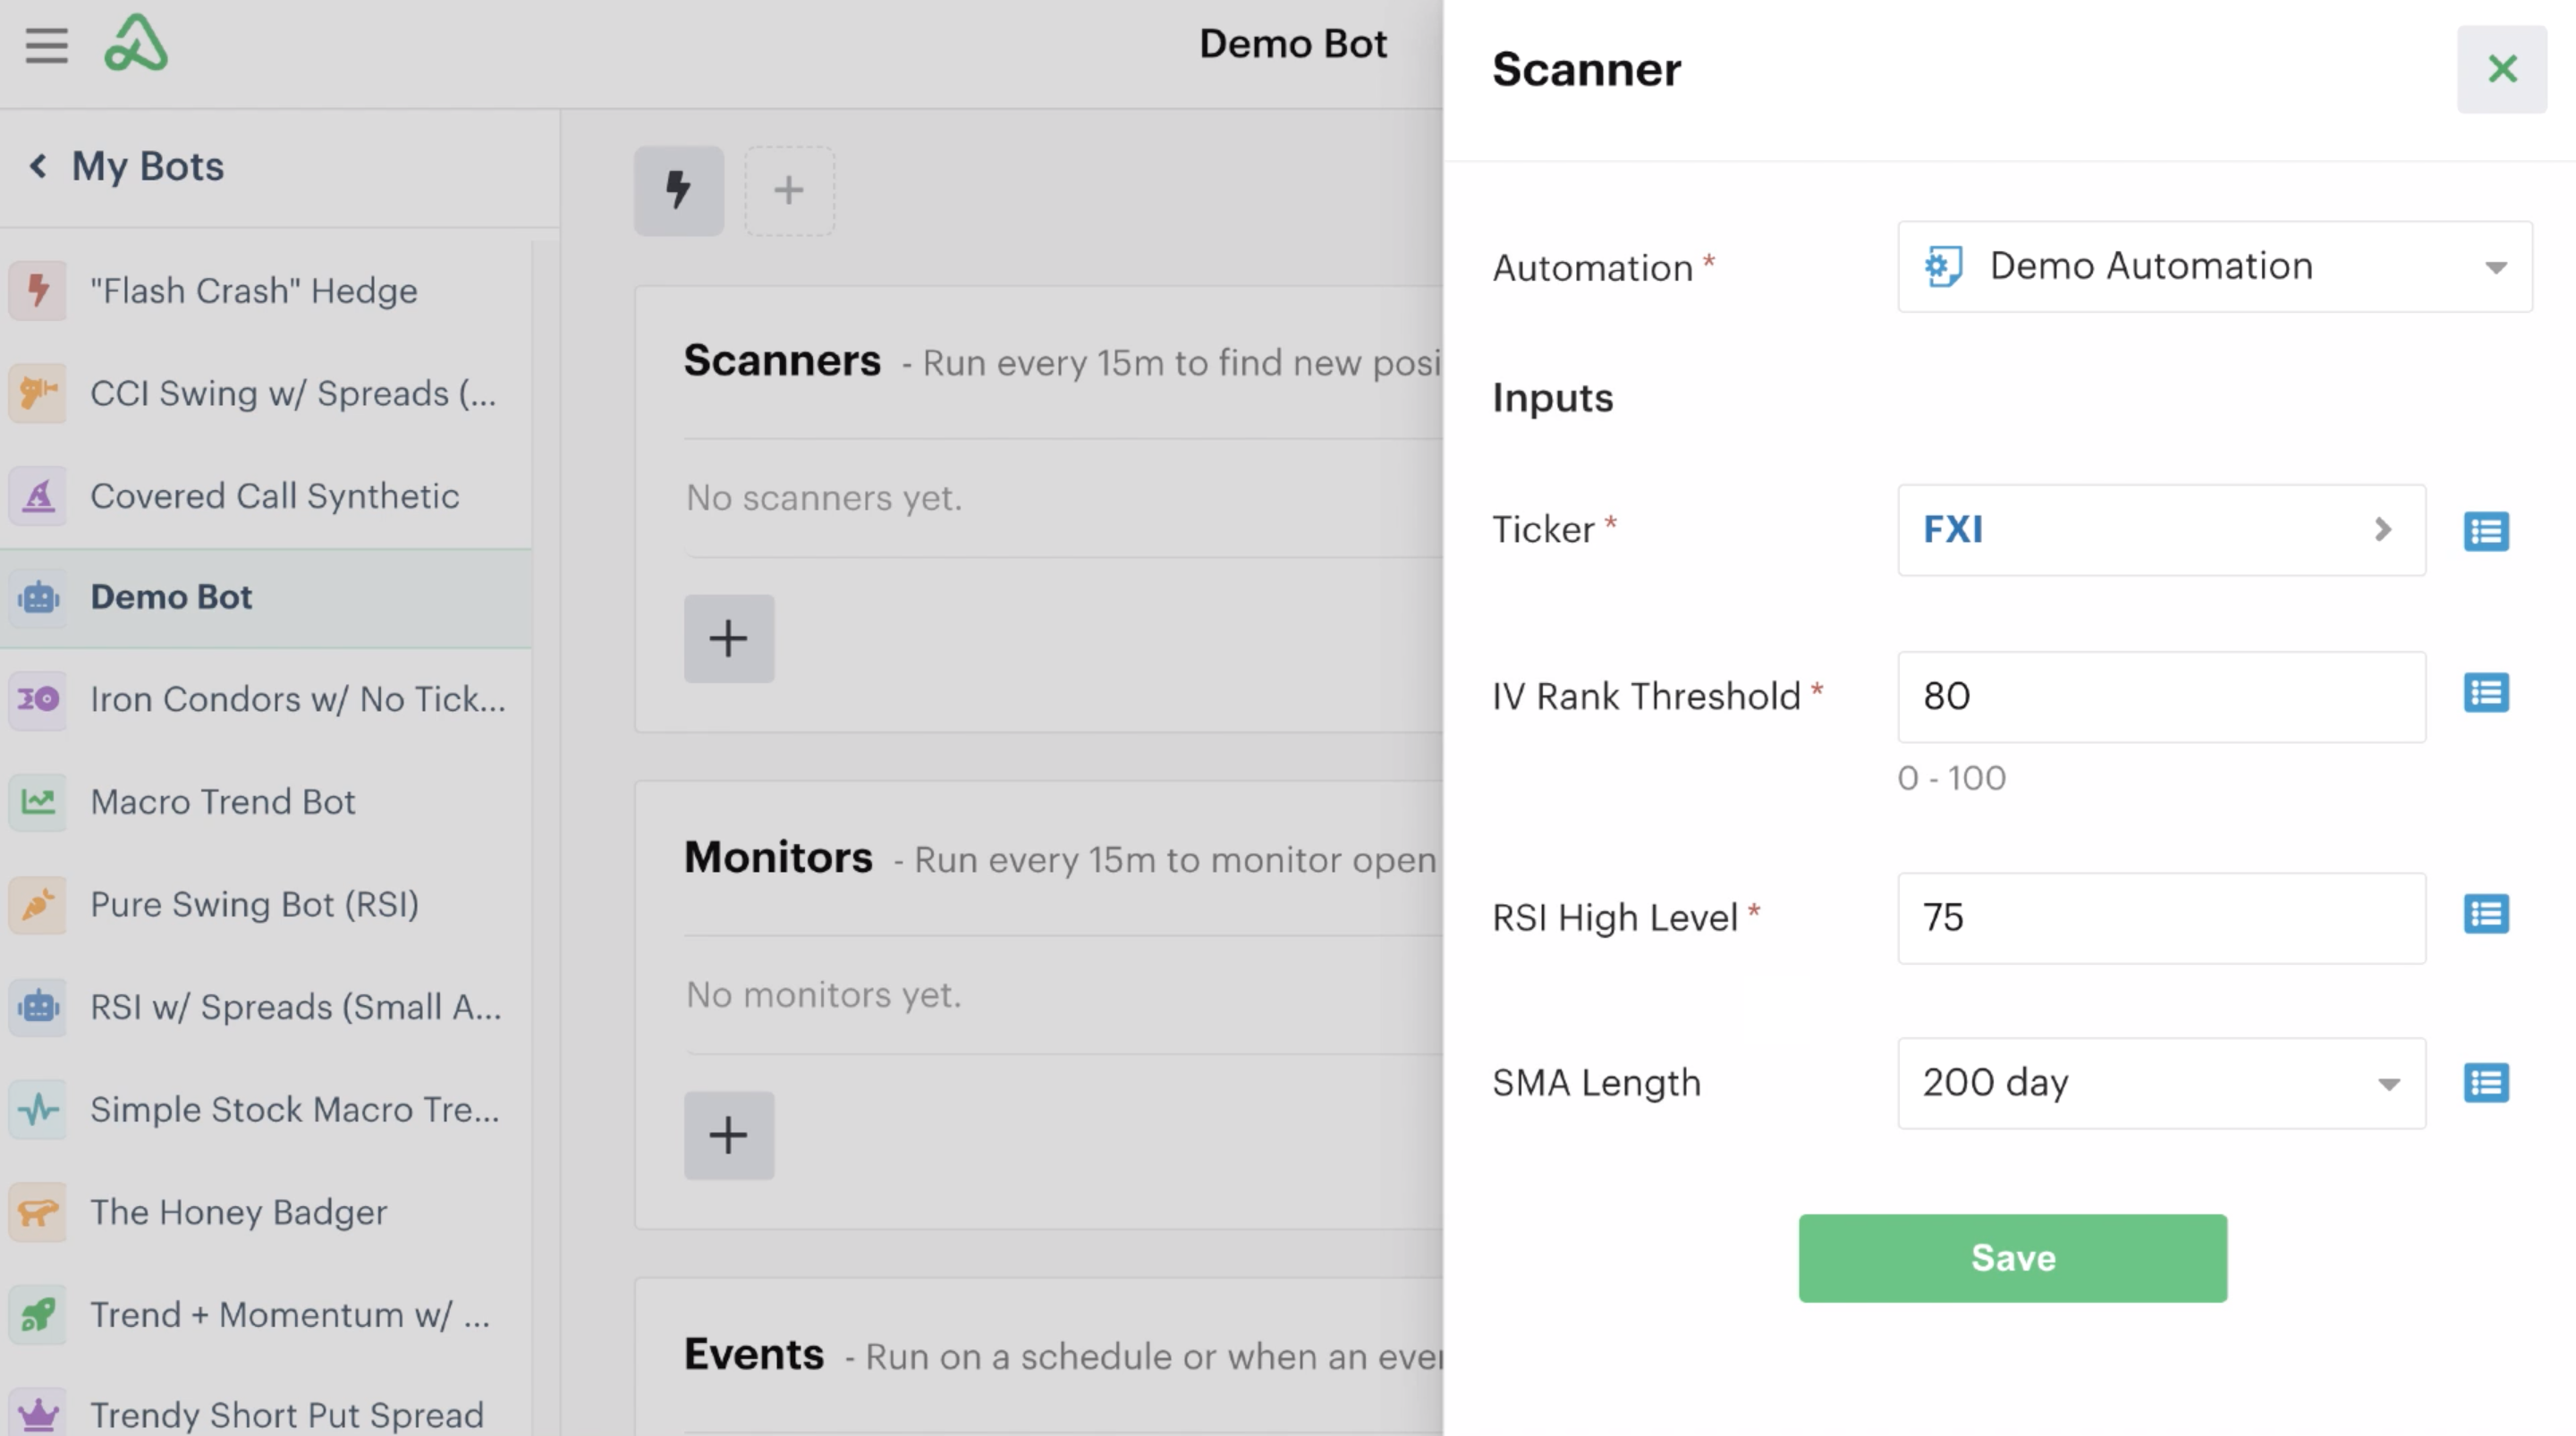 Automation's custom inputs listed in automations tab